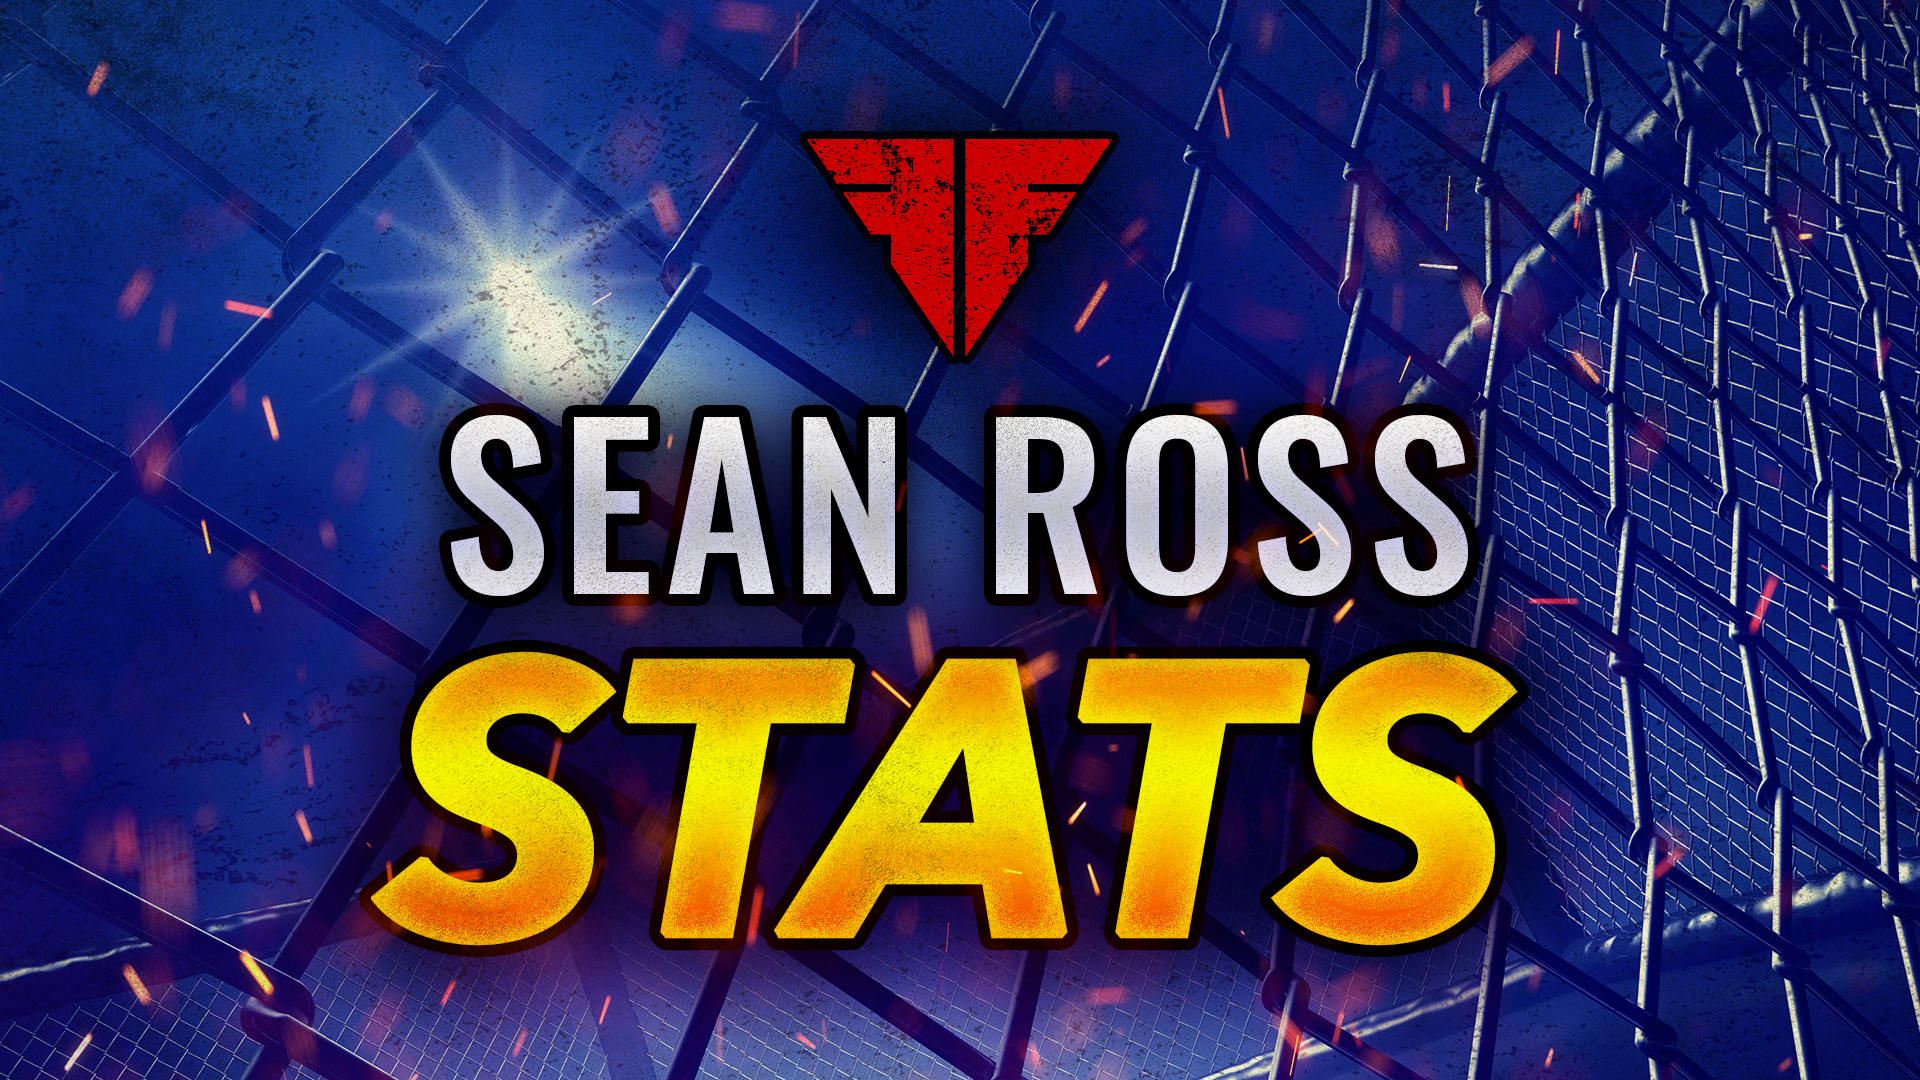 Sean Ross Stats For WWE Royal Rumble 2020